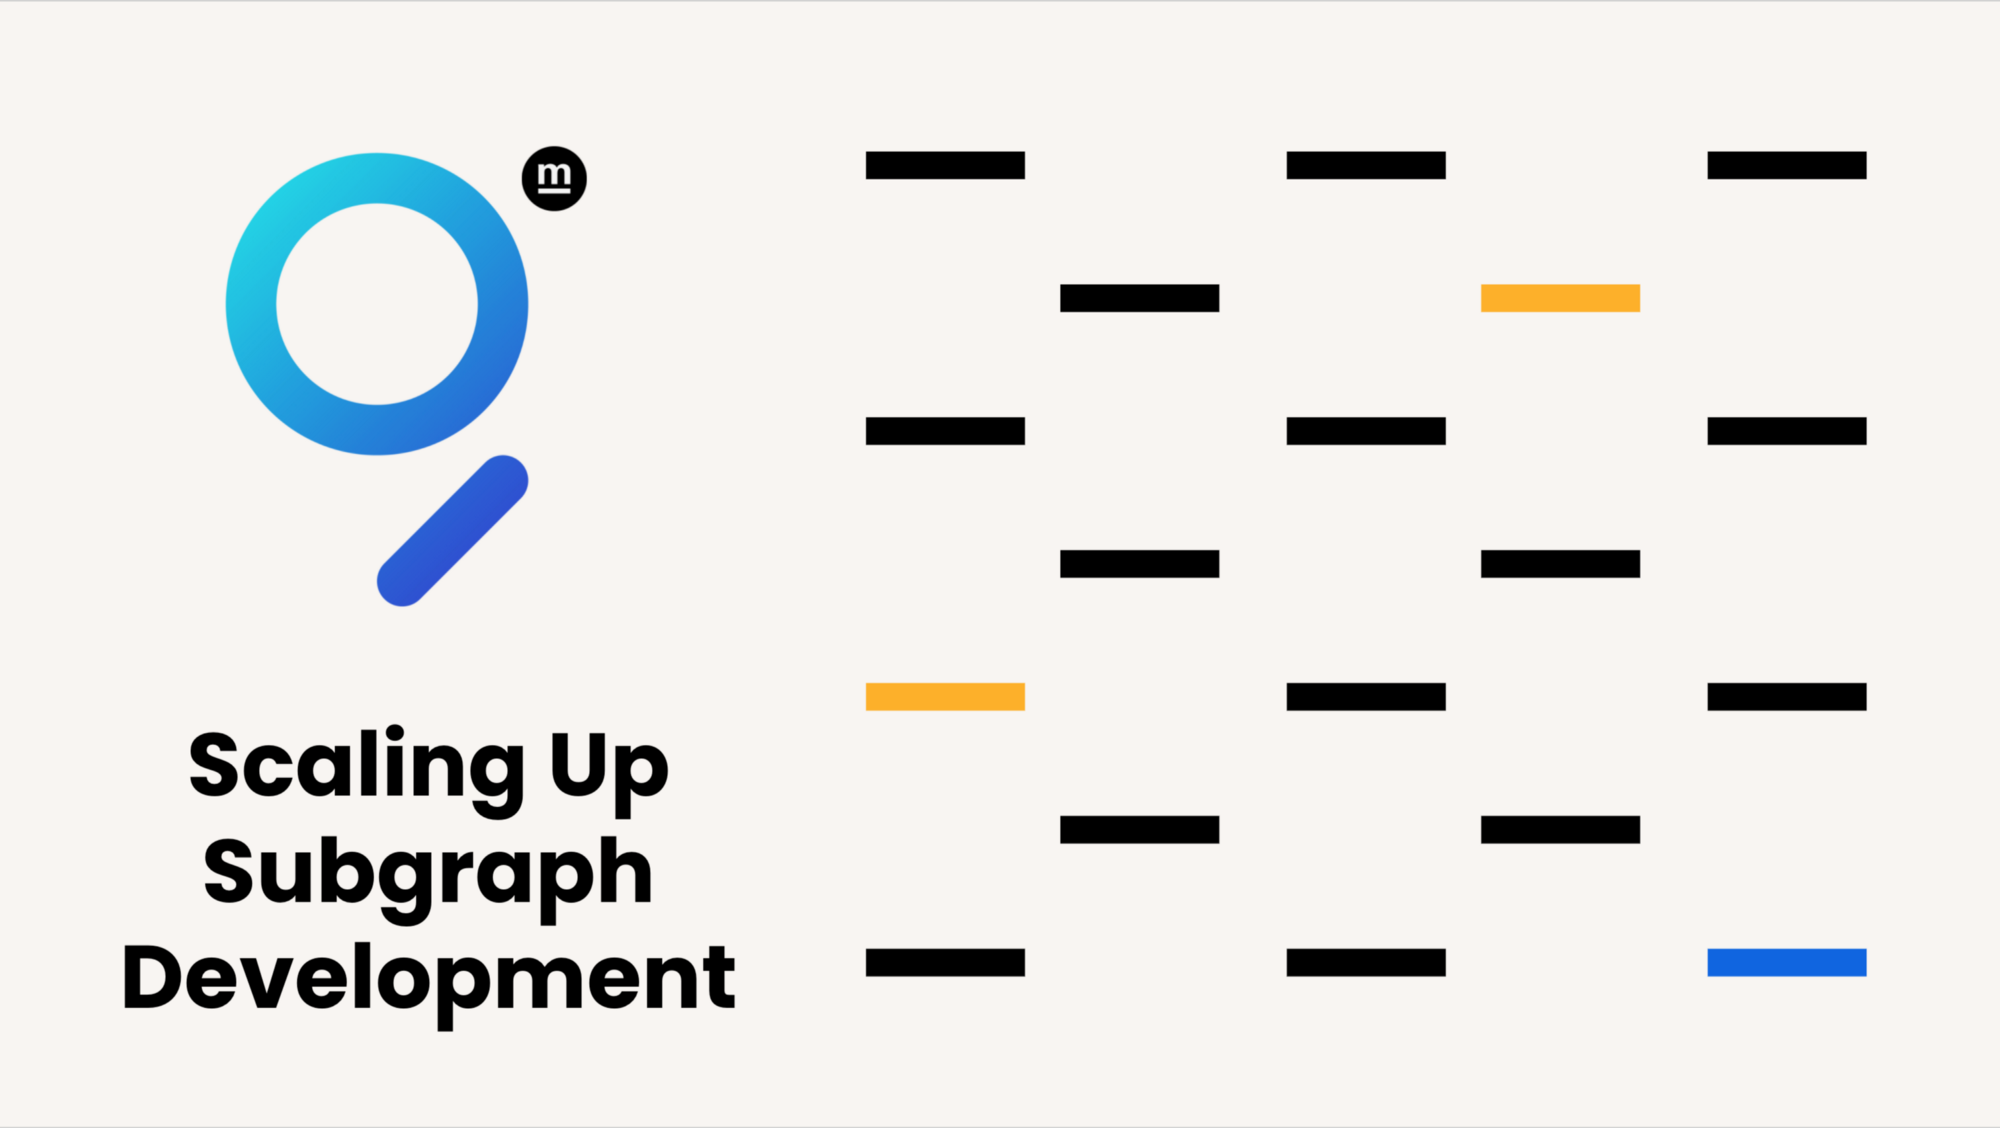 Scaling Up Subgraph Development